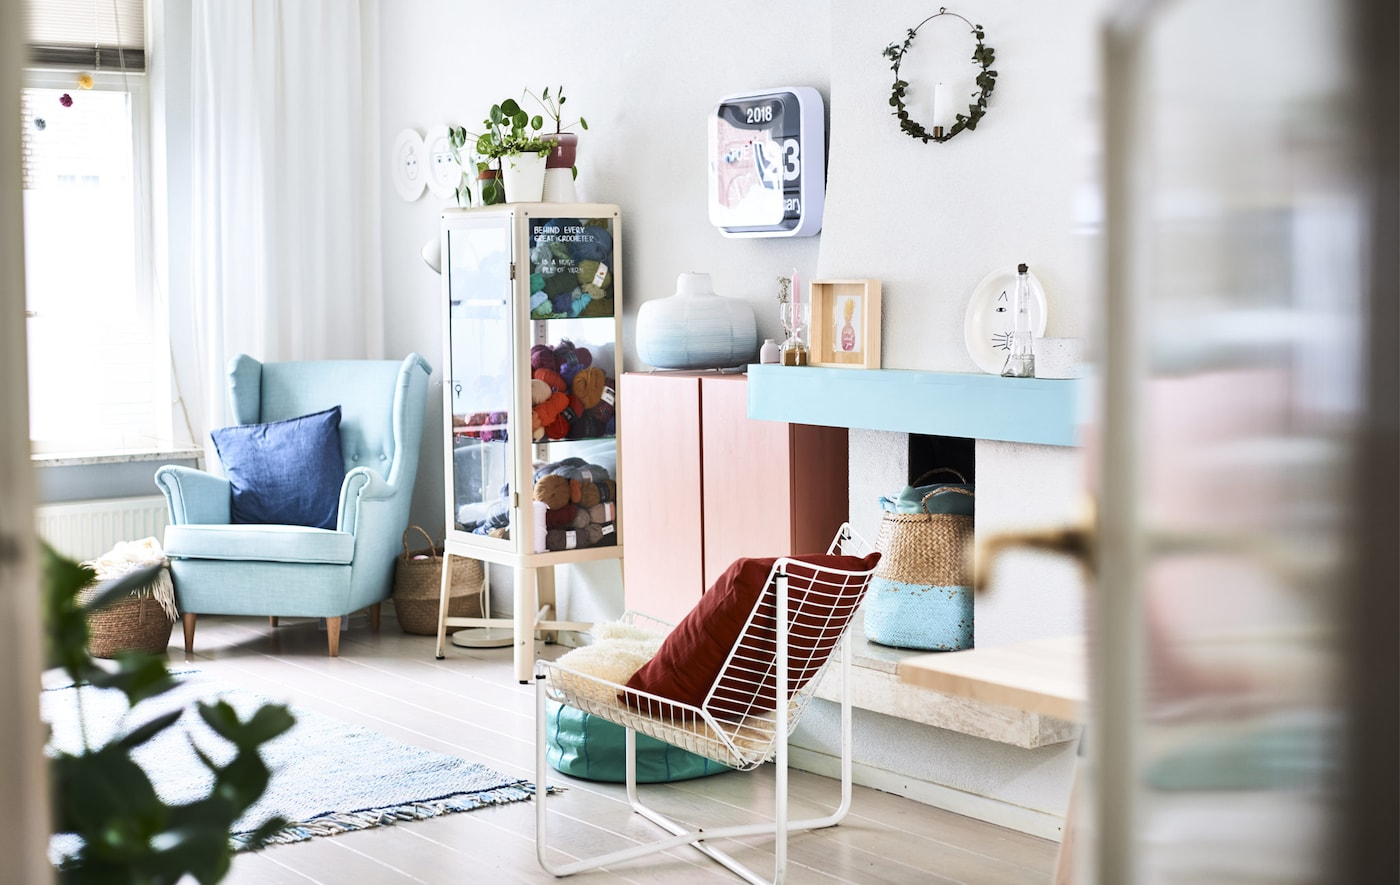 A living room with pastel furniture and accessories.